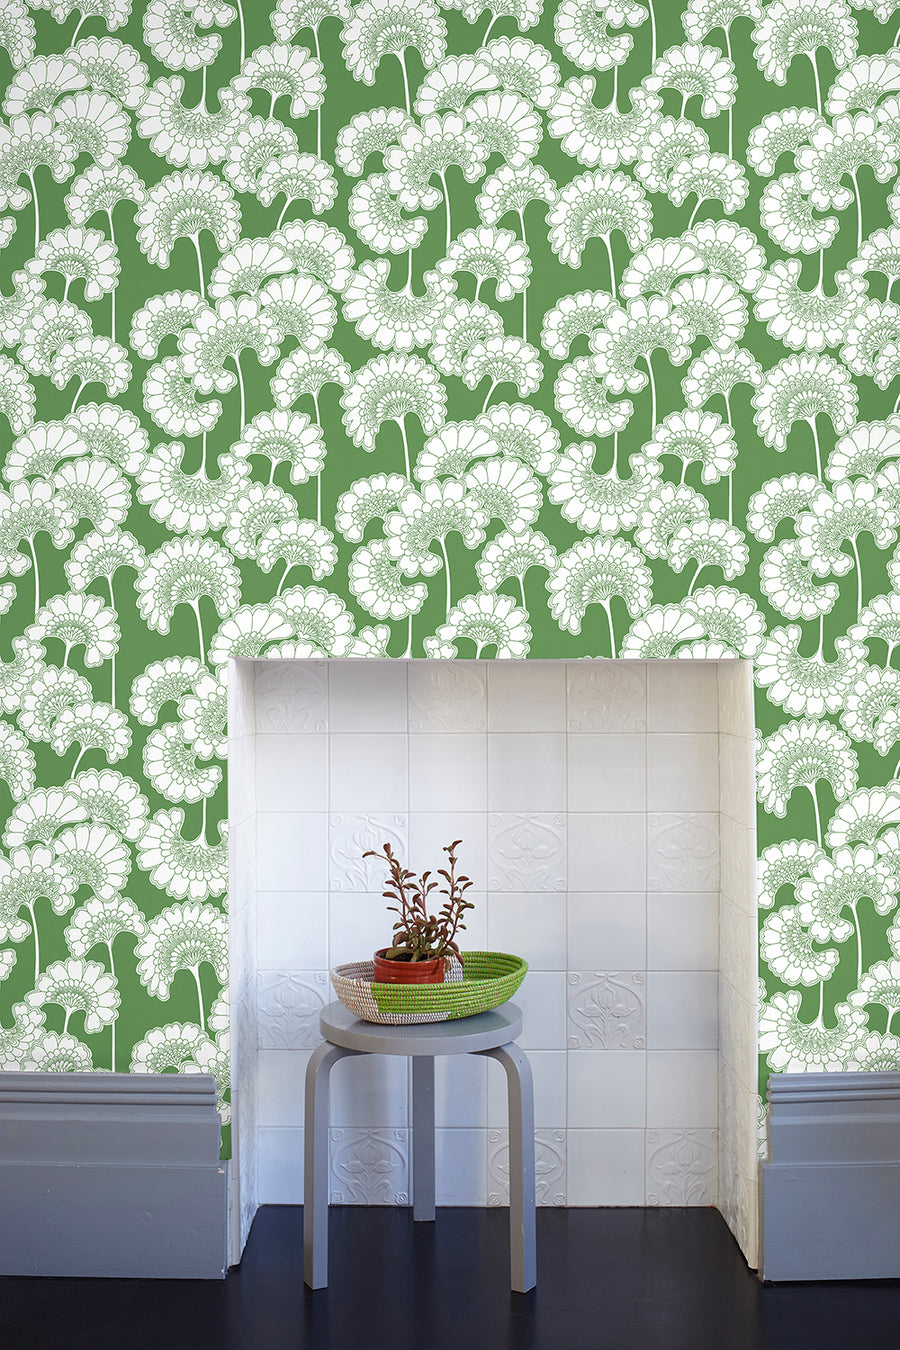 Japanese Floral Wallpaper - Grass